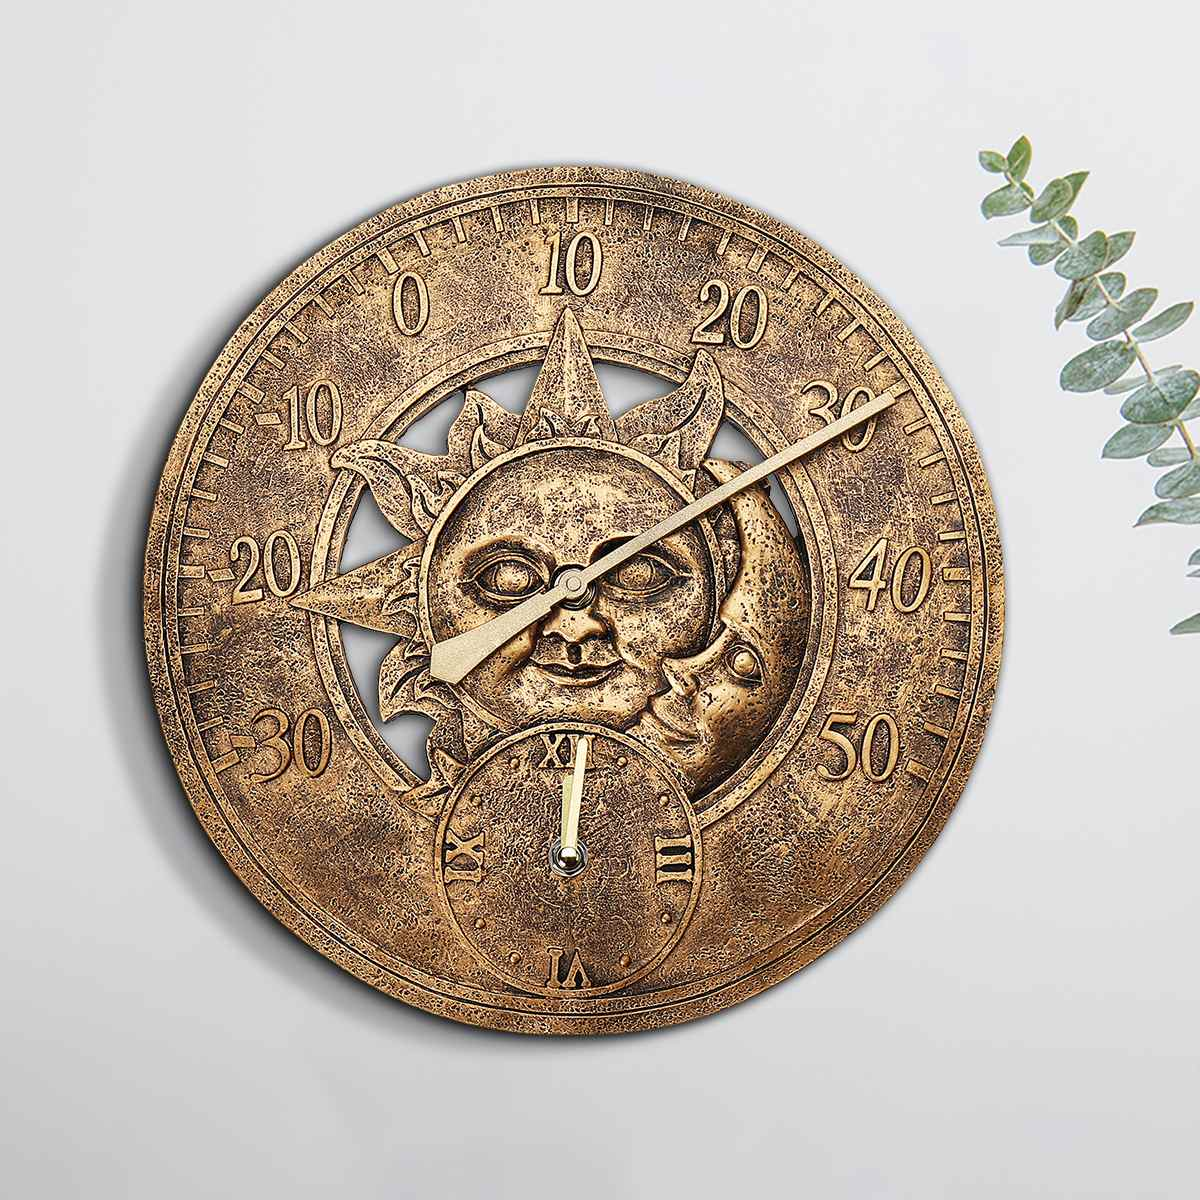 Resin Wall Clock With Thermometer Garden Outdoor Decoration Home Indoor Waterproof Wall Station Clock 12 Inch Sun And Moon Theme